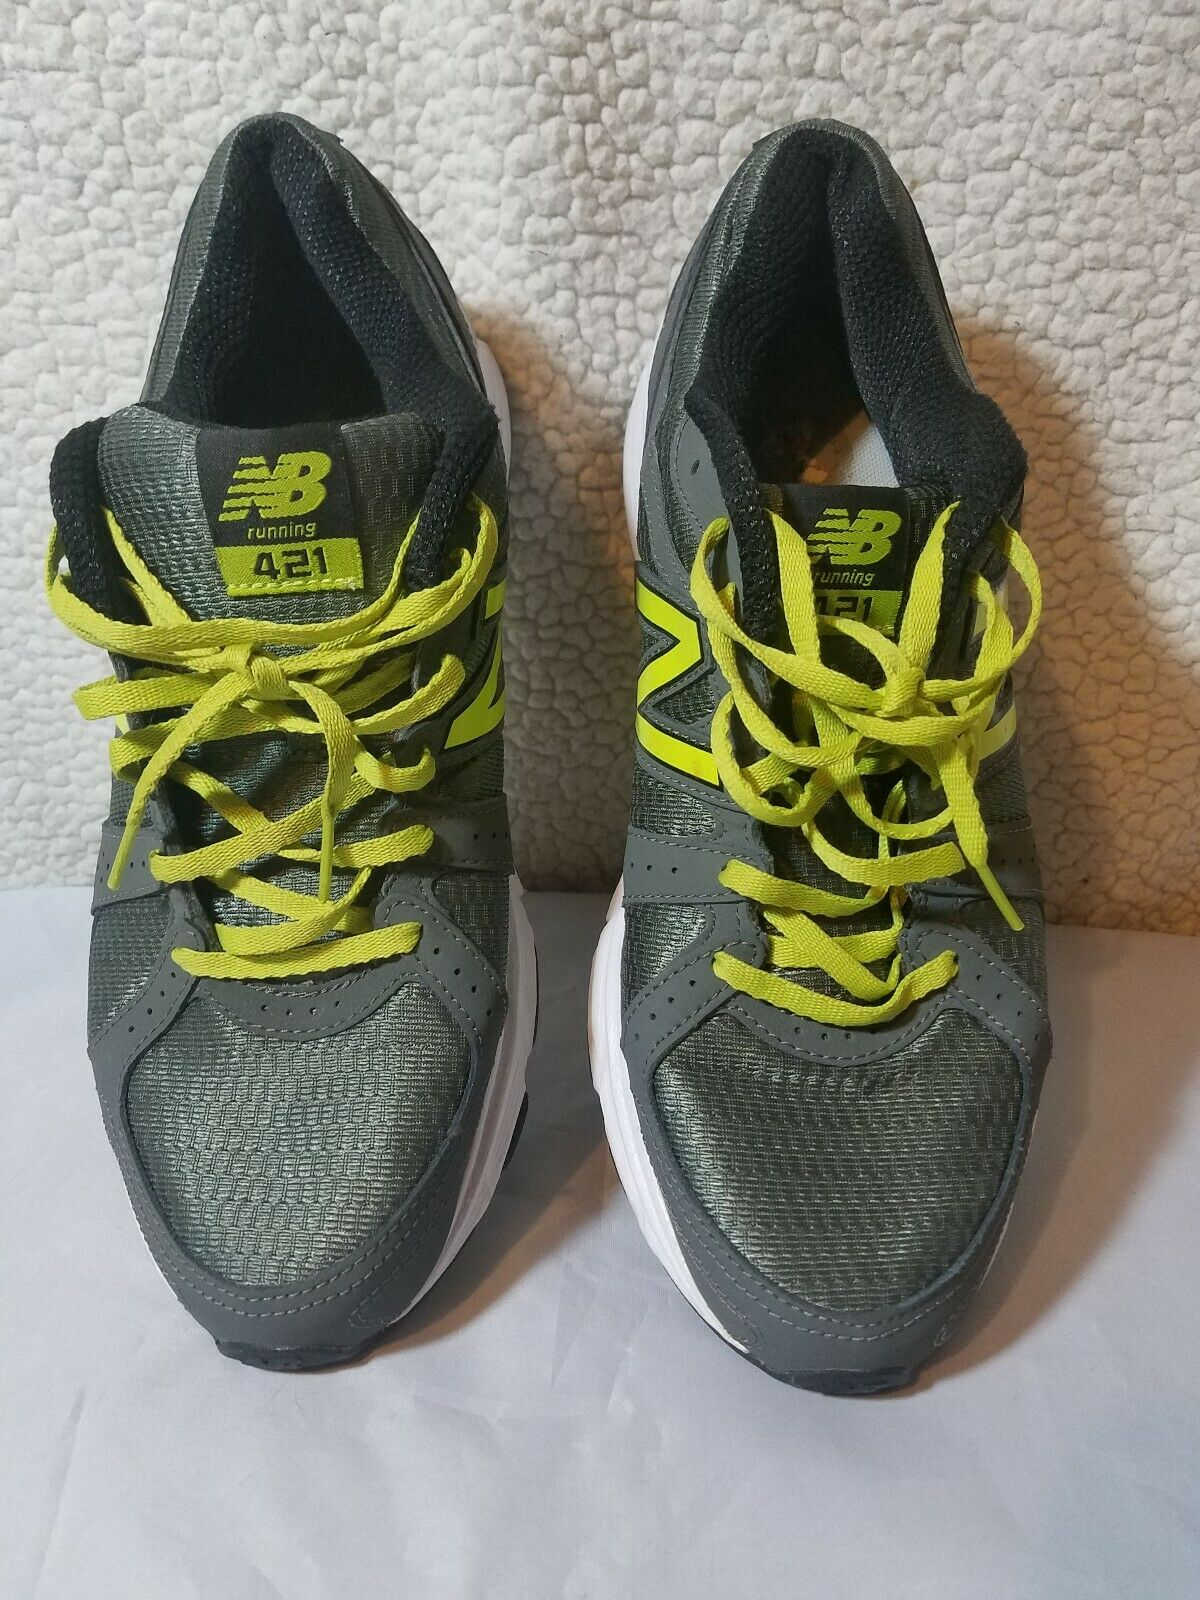 MEN'S NEW BALANCE RUNNING COURSE ATHLETIC WORKOUT SHOES ME421GL1 10 MEDIUM NEW